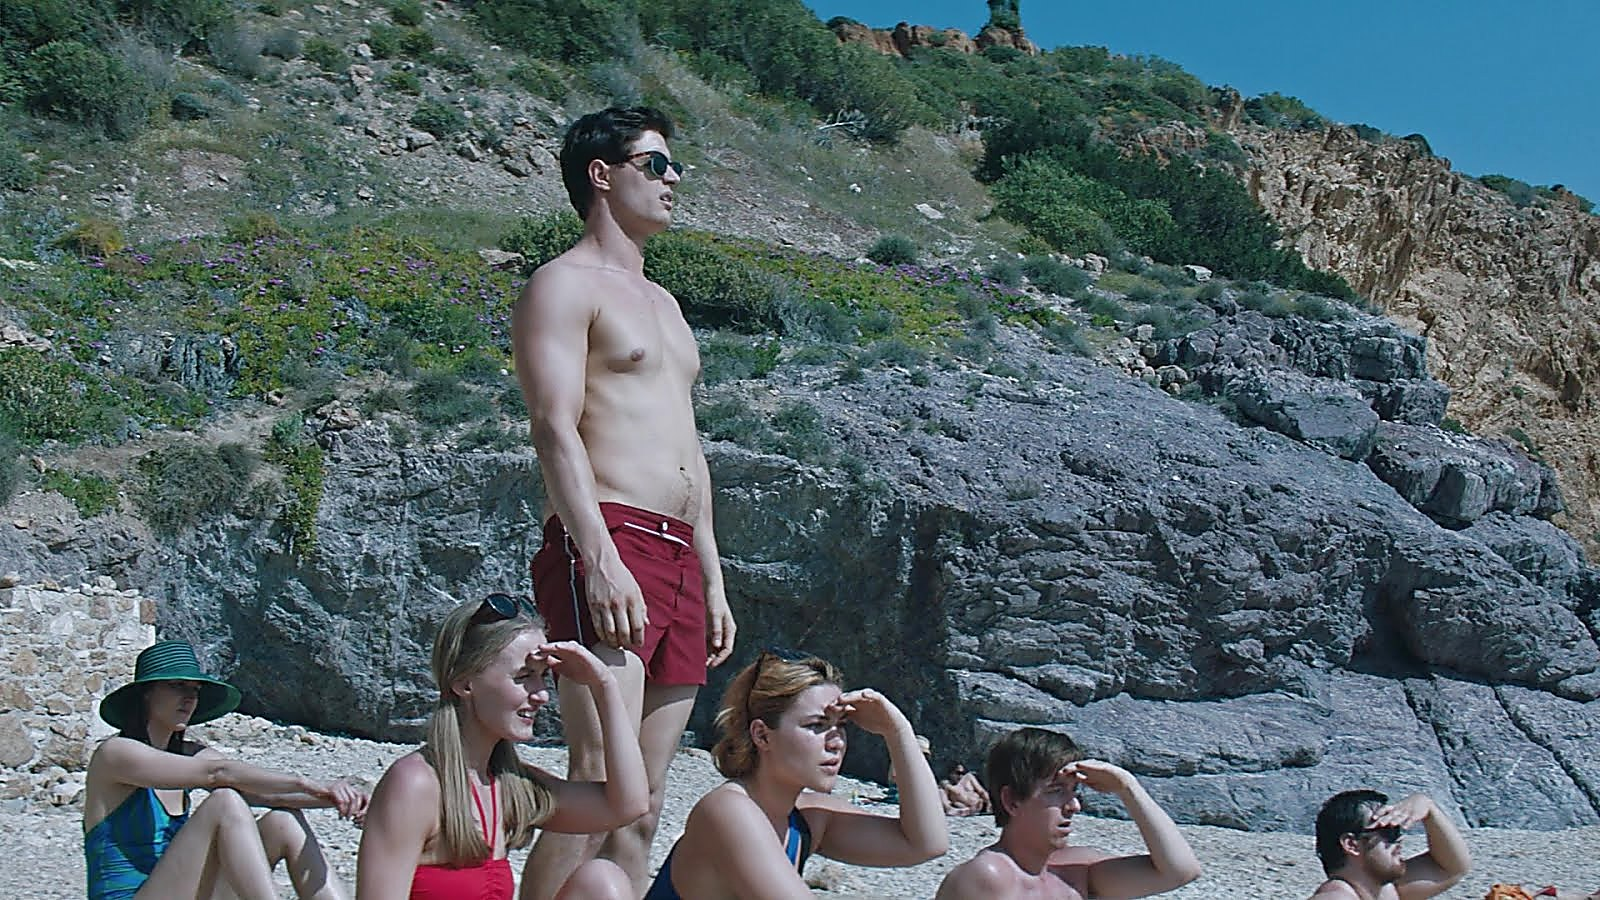 Max Irons sexy shirtless scene October 29, 2018, 6am